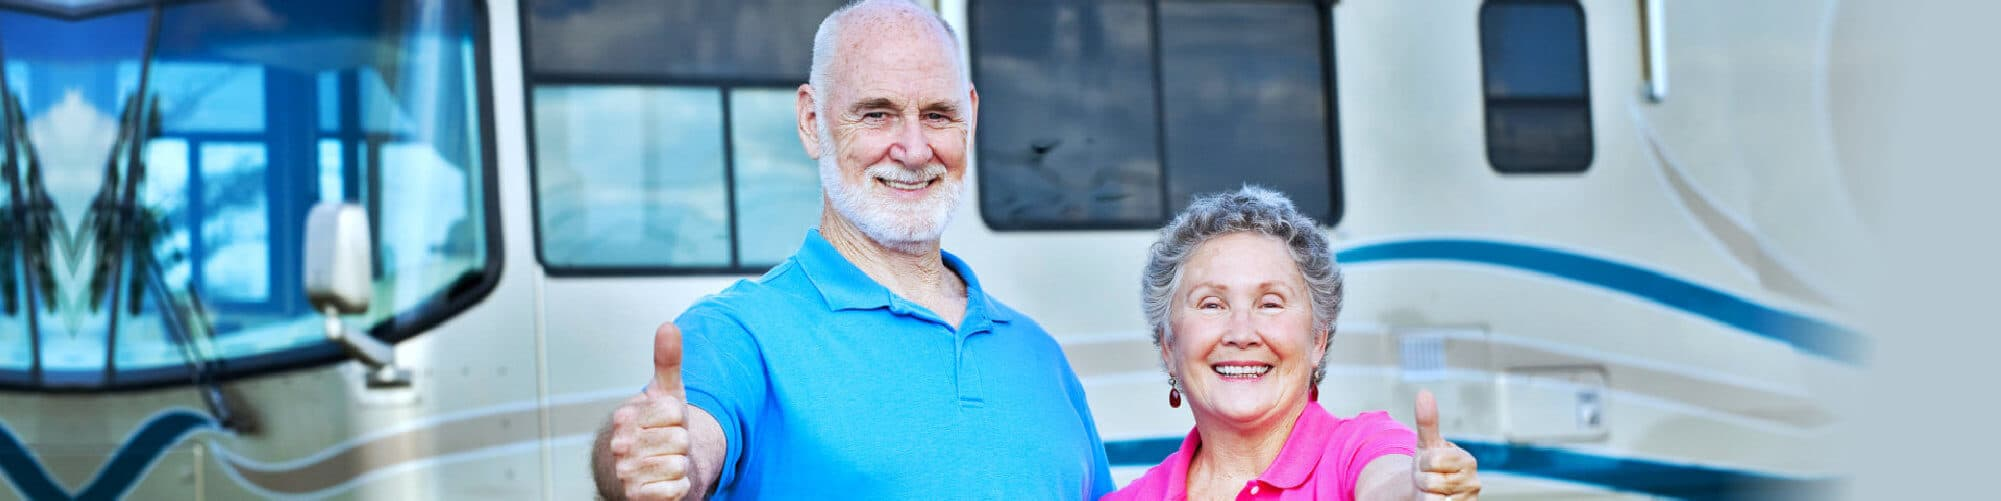 Senior couple posing in front of their luxury motor home, giving a thumbs